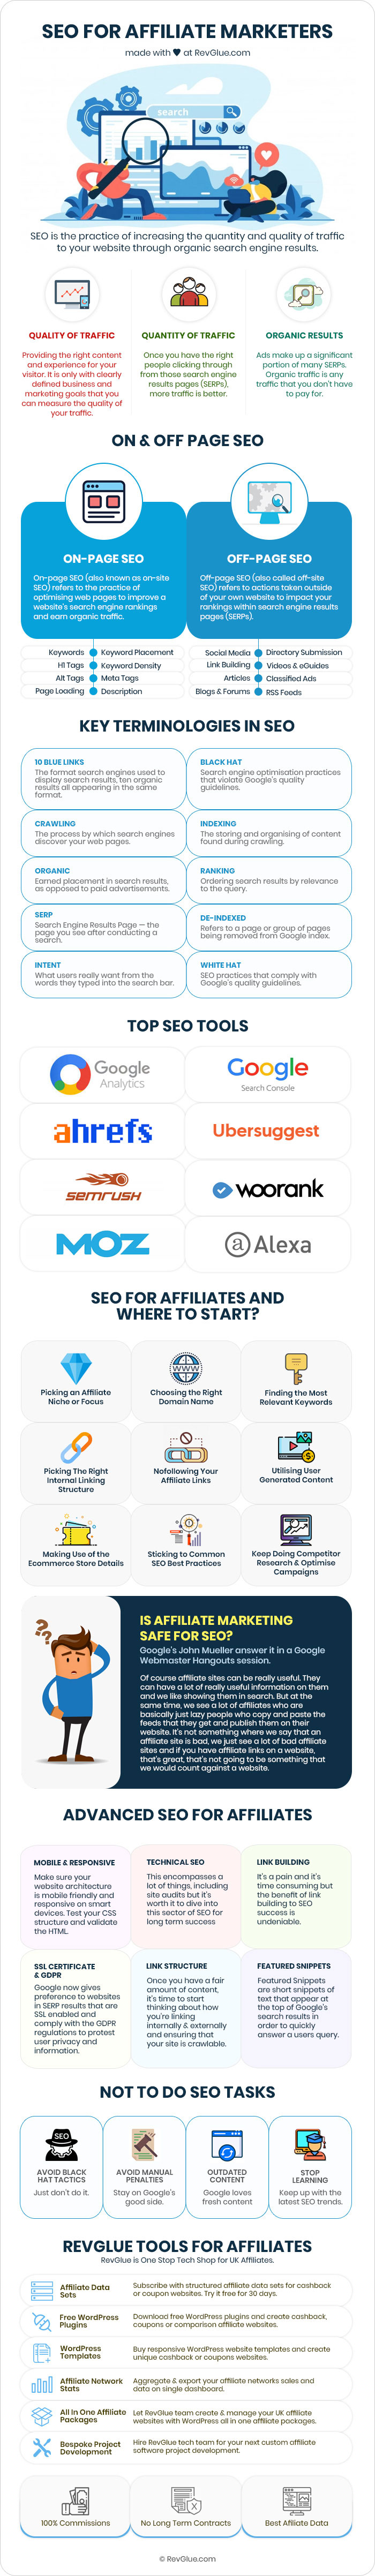 SEO for Affiliate Marketers Infographic